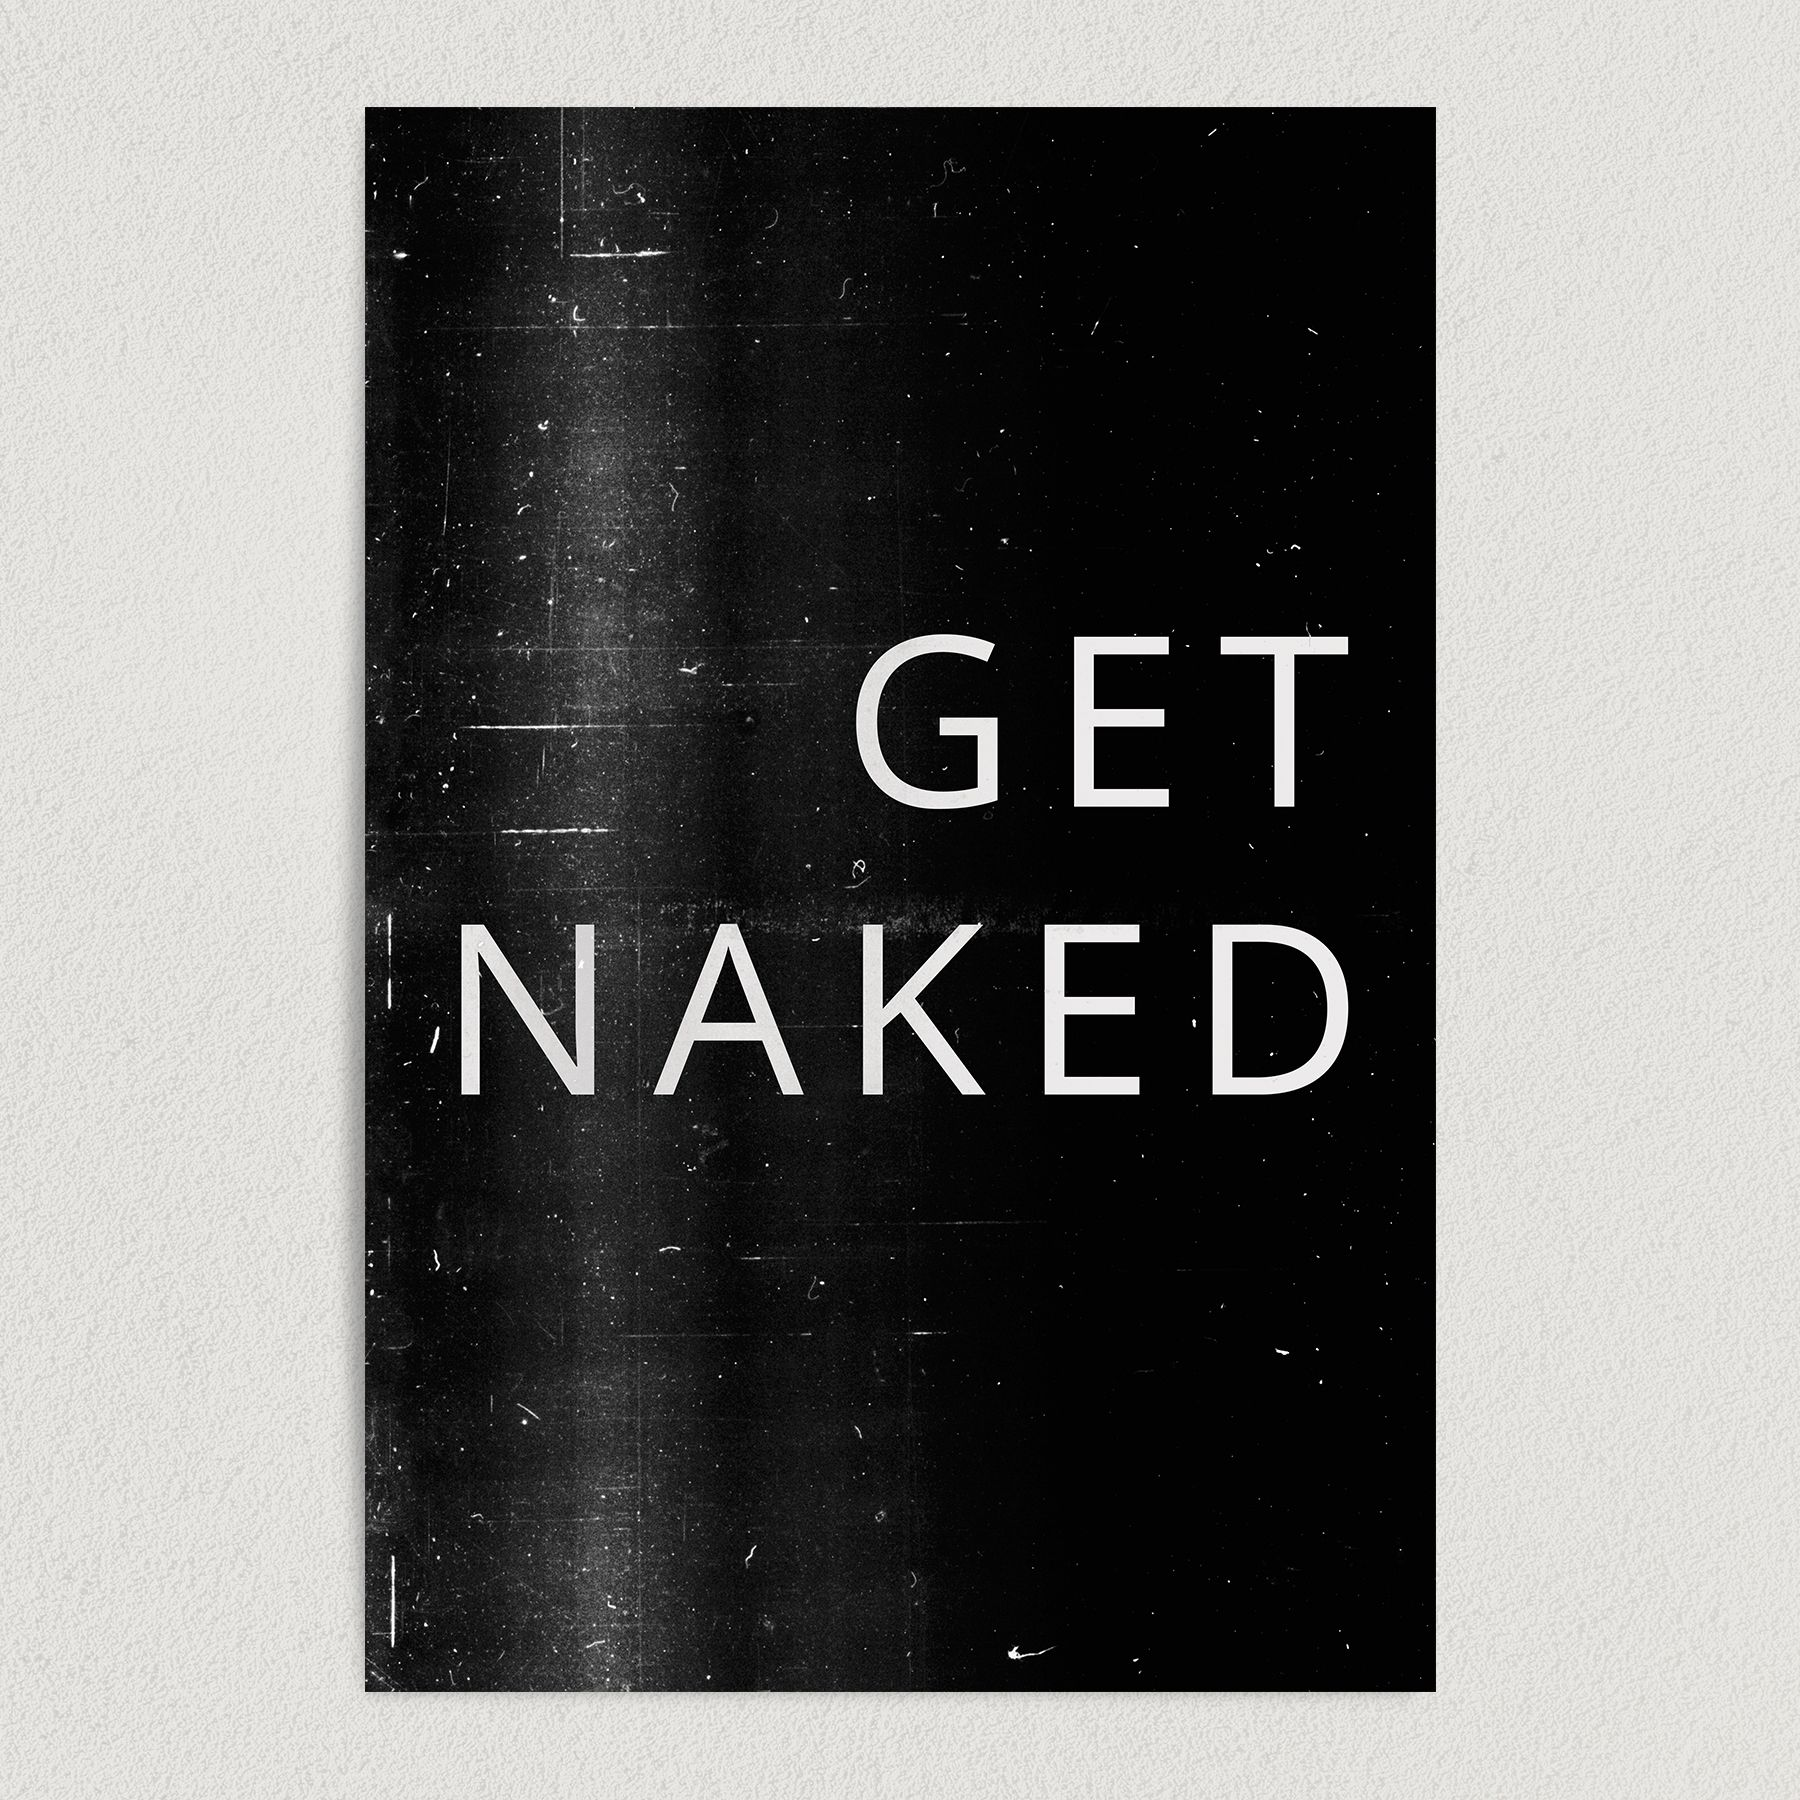 Get Naked Adult Humor Art Print Poster 12″ x 18″ Wall Art Q2133